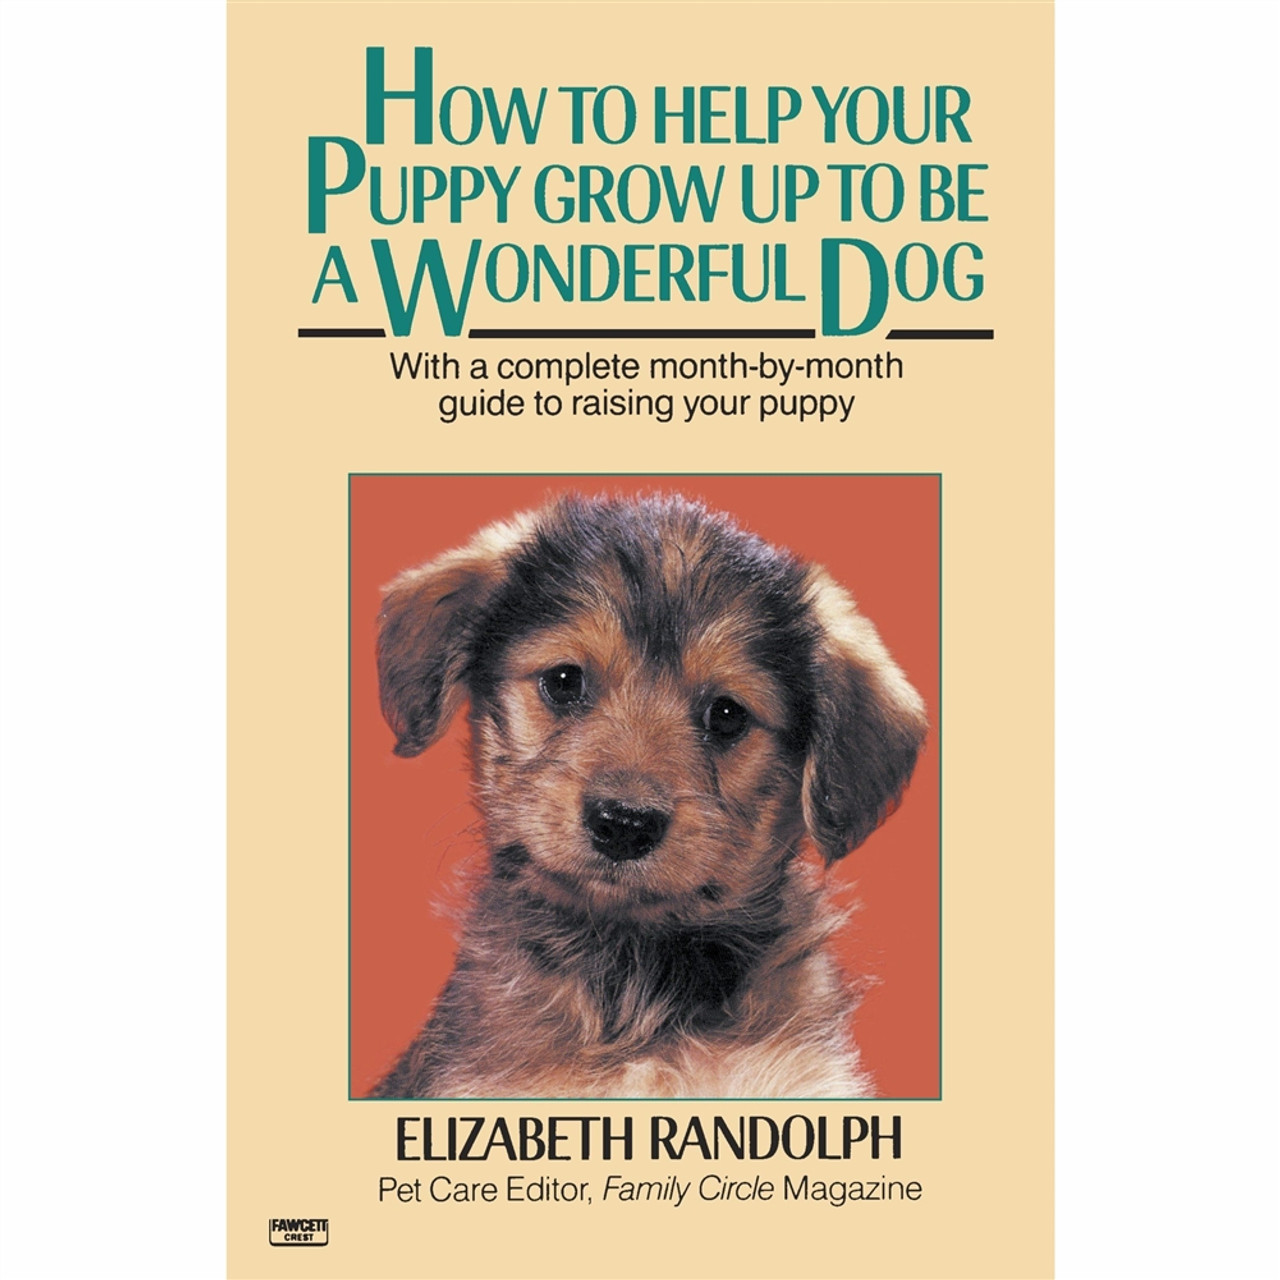 Pet Books - How to Help Your Puppy Grow Up to Be a Wonderful Dog